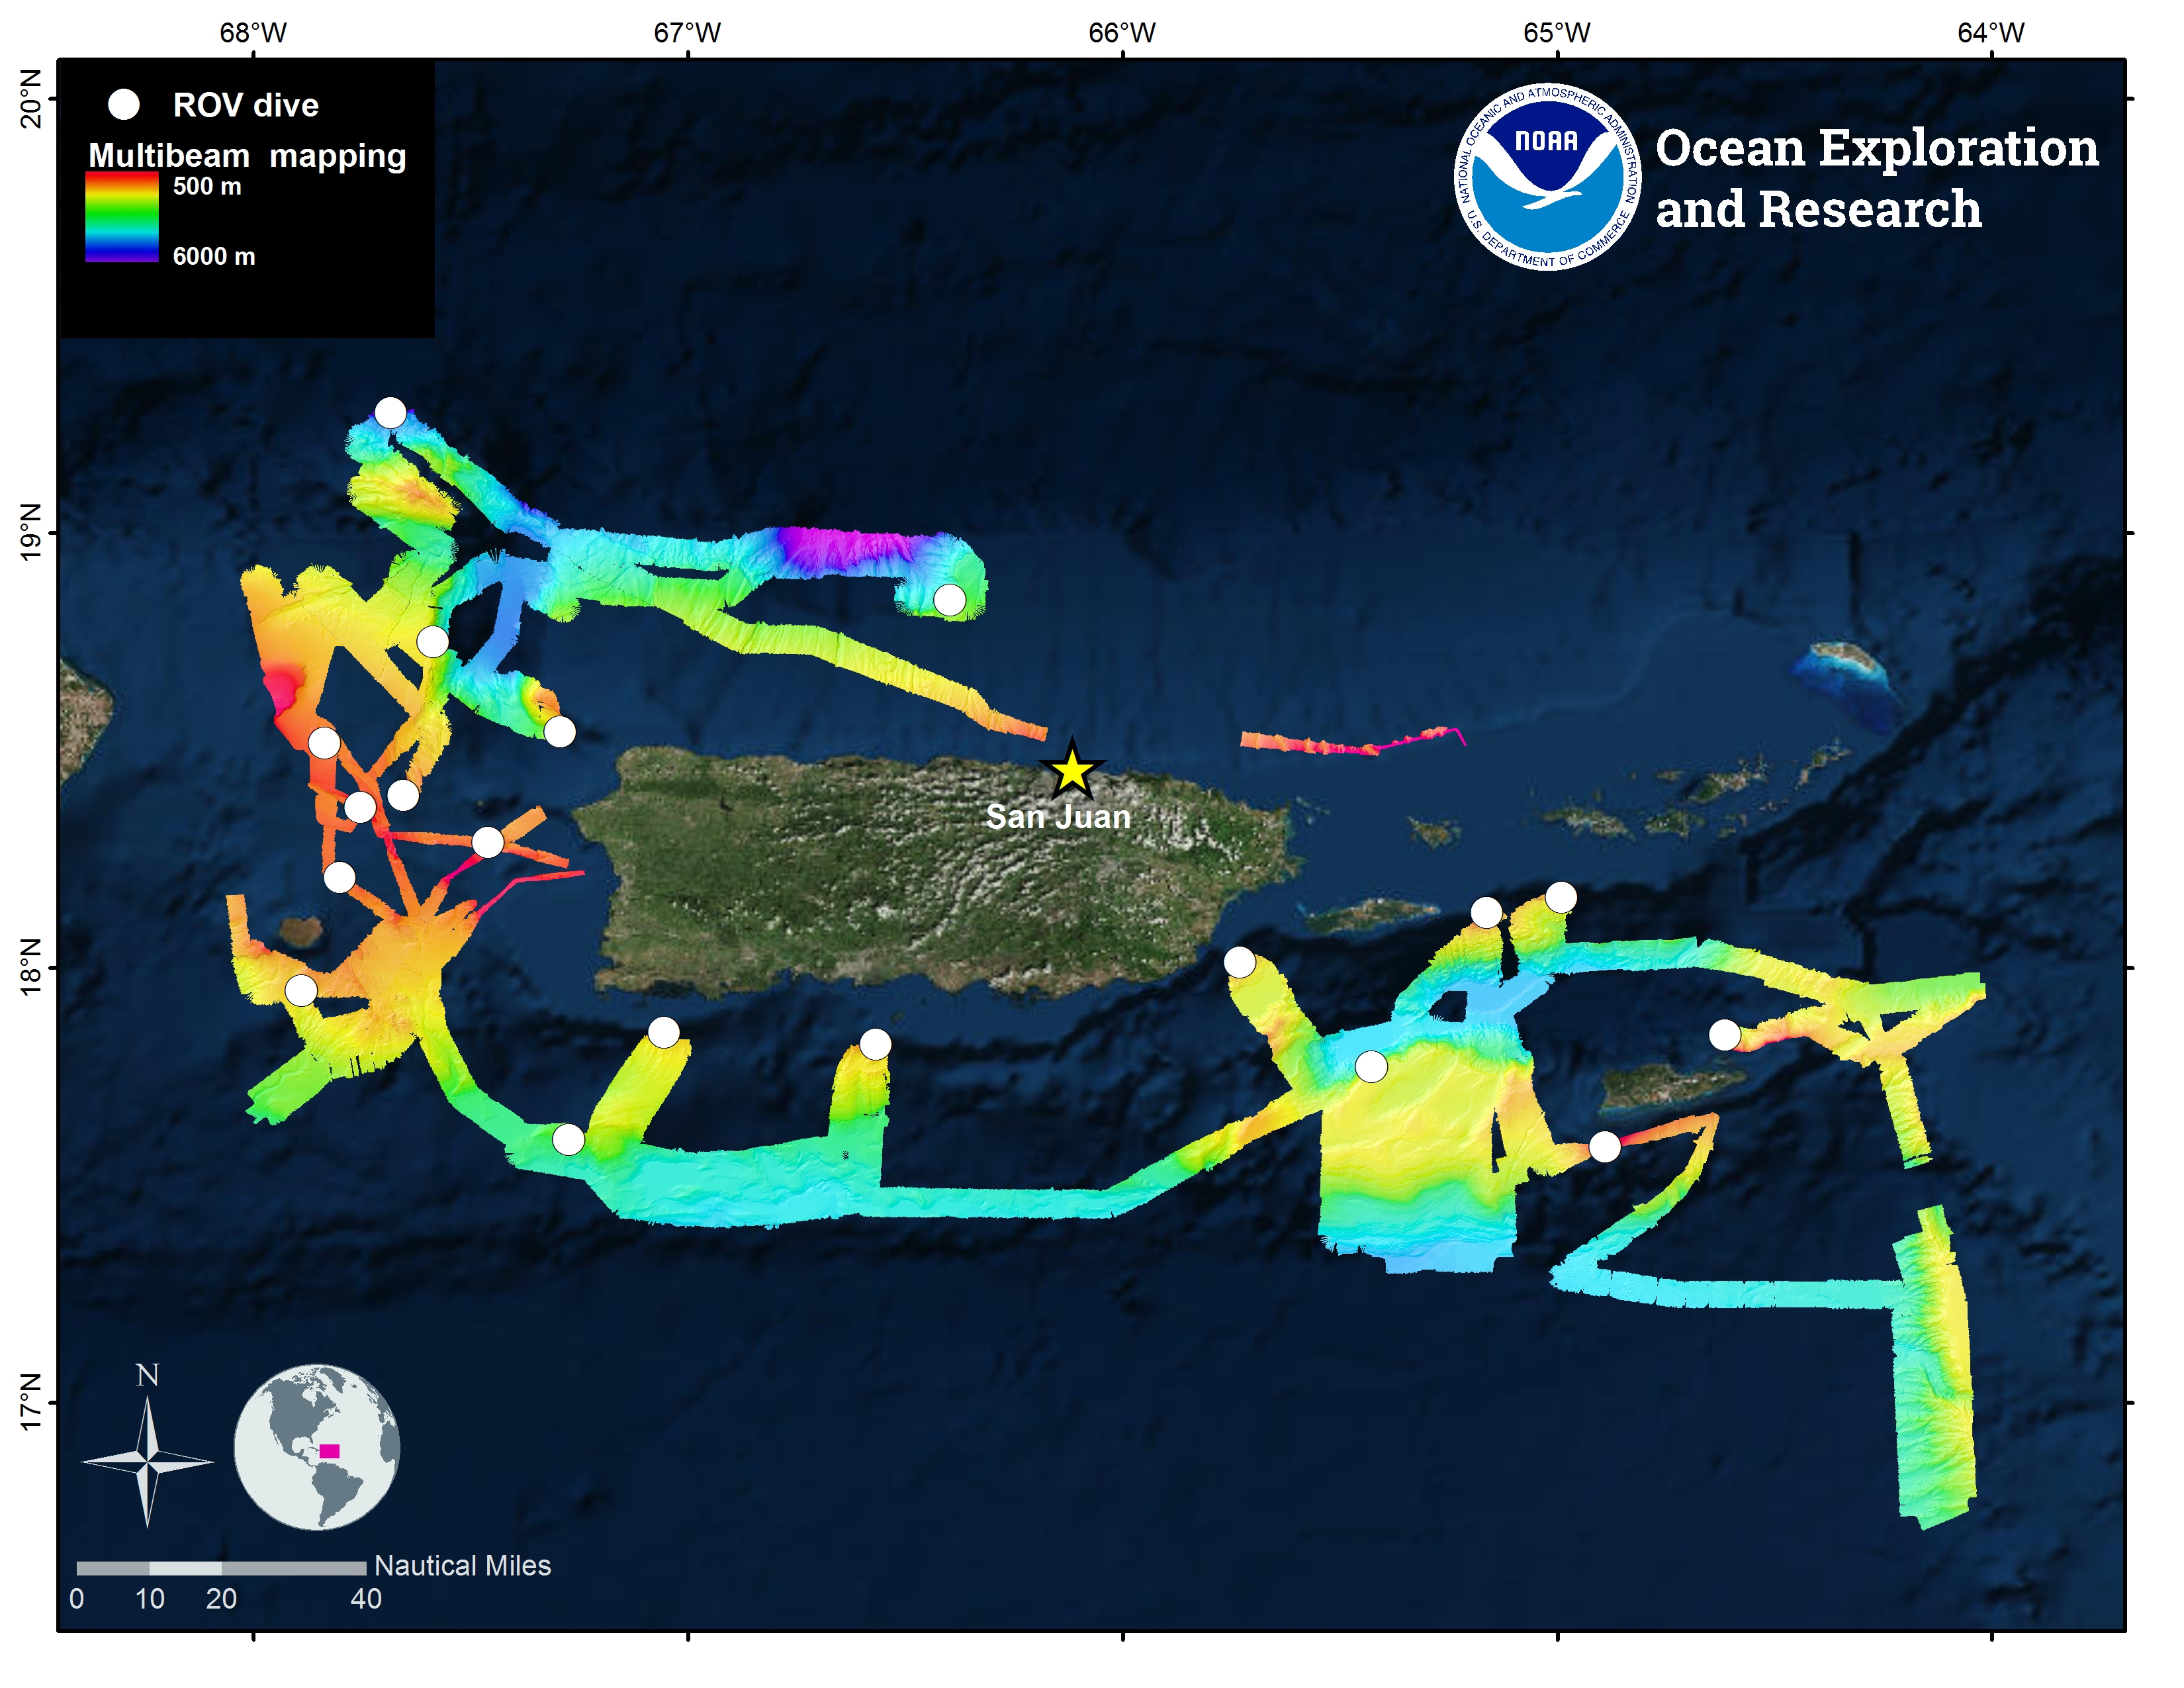 Figure 2. Overview map showing the locations of ROV and mapping operations completed during the Océano Profundo 2018 expedition.